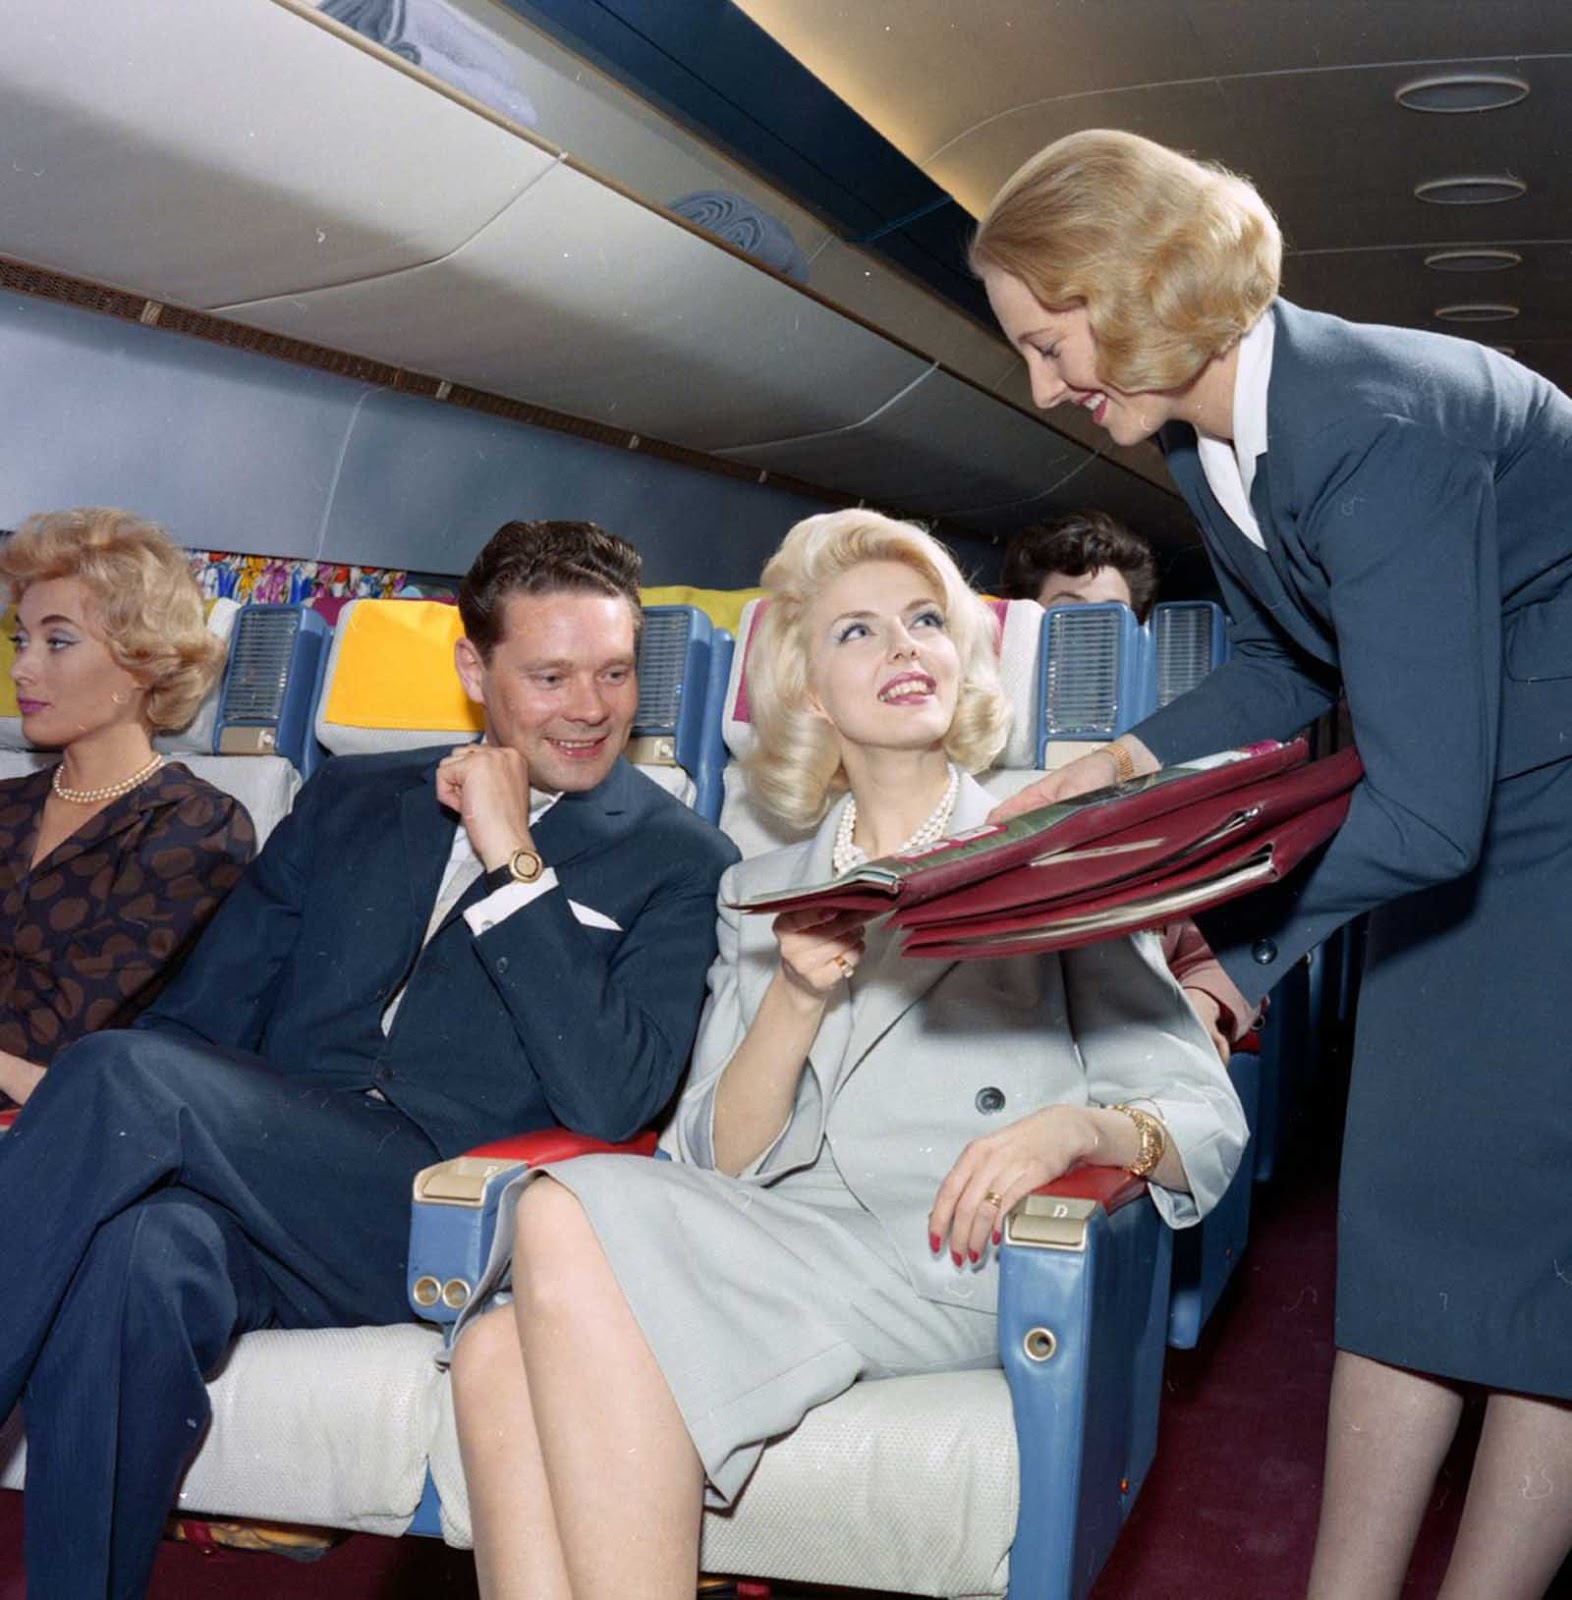 The mid-1960s, a flight attendant with high fashion hairstyle brings the menu.